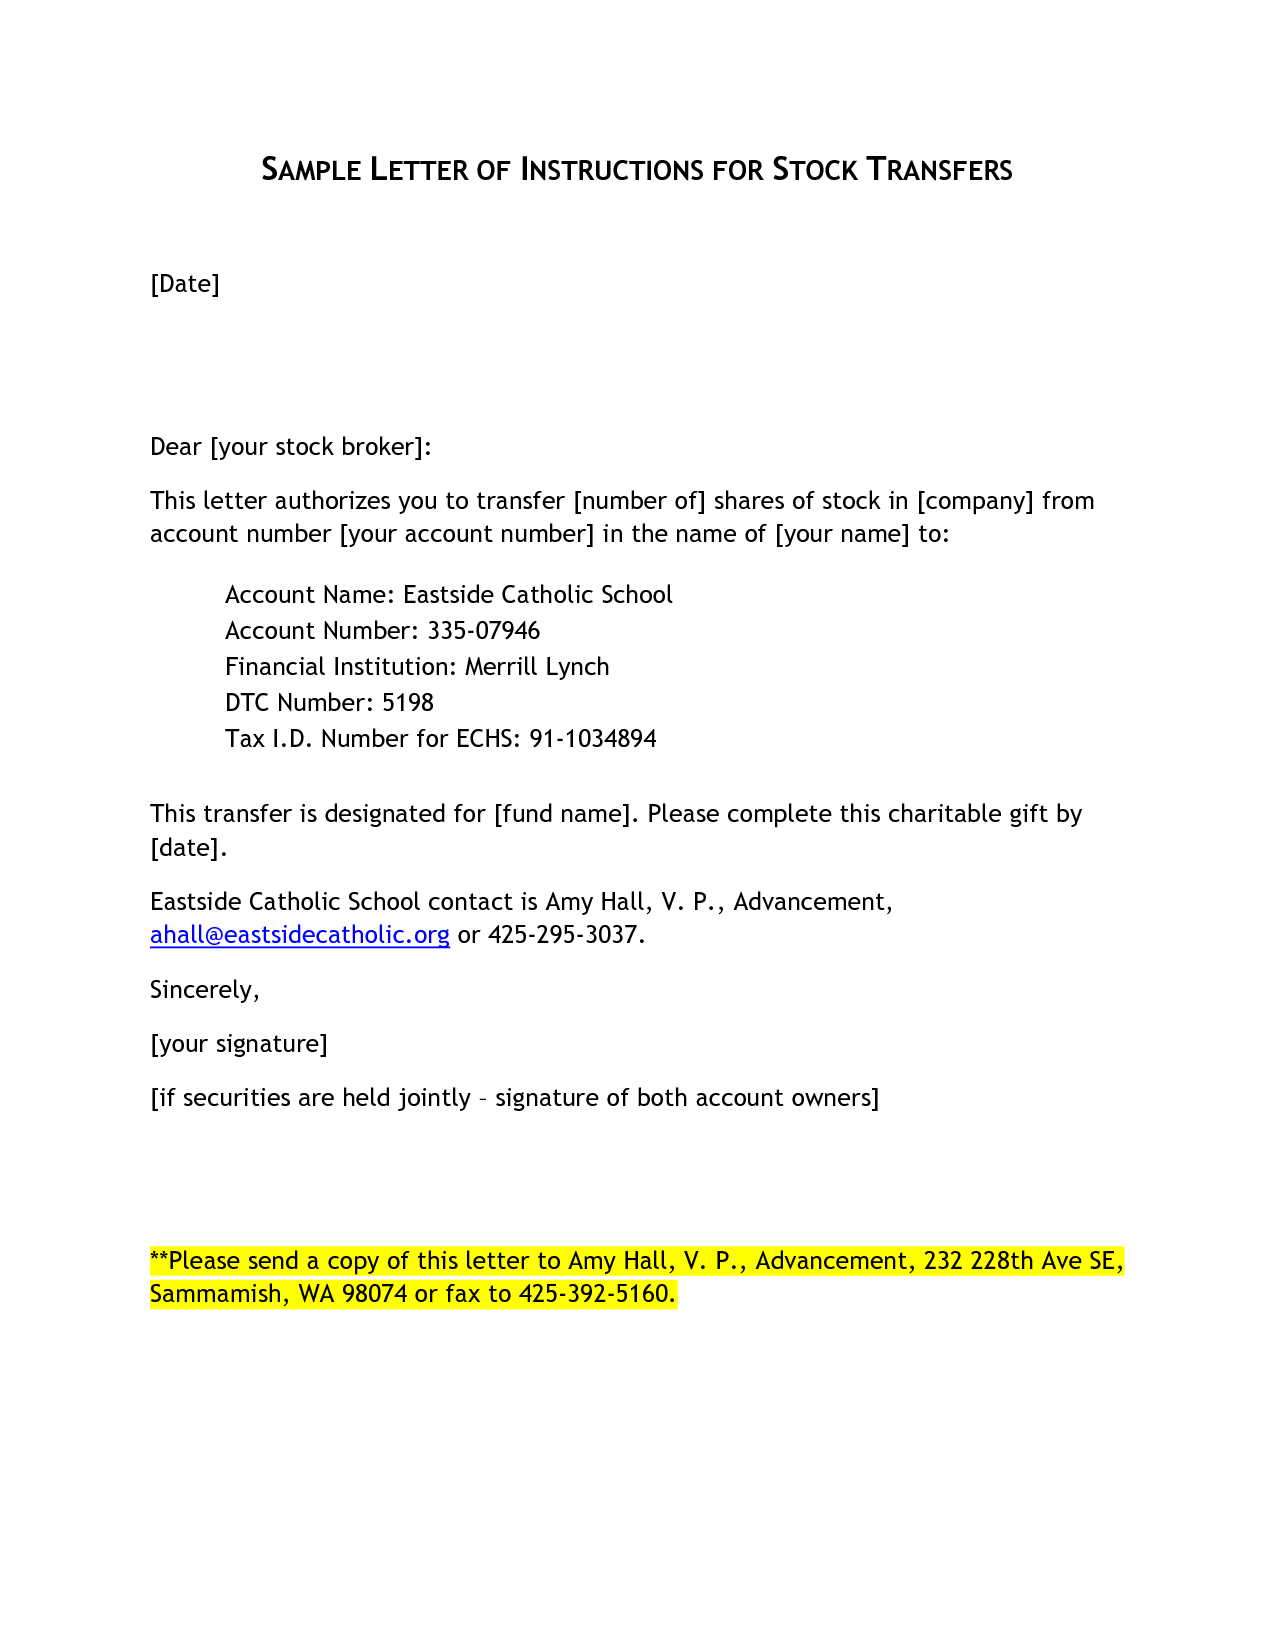 Request letter format for school transfer certificate bonafide request letter format for school transfer certificate bonafide from yelopaper